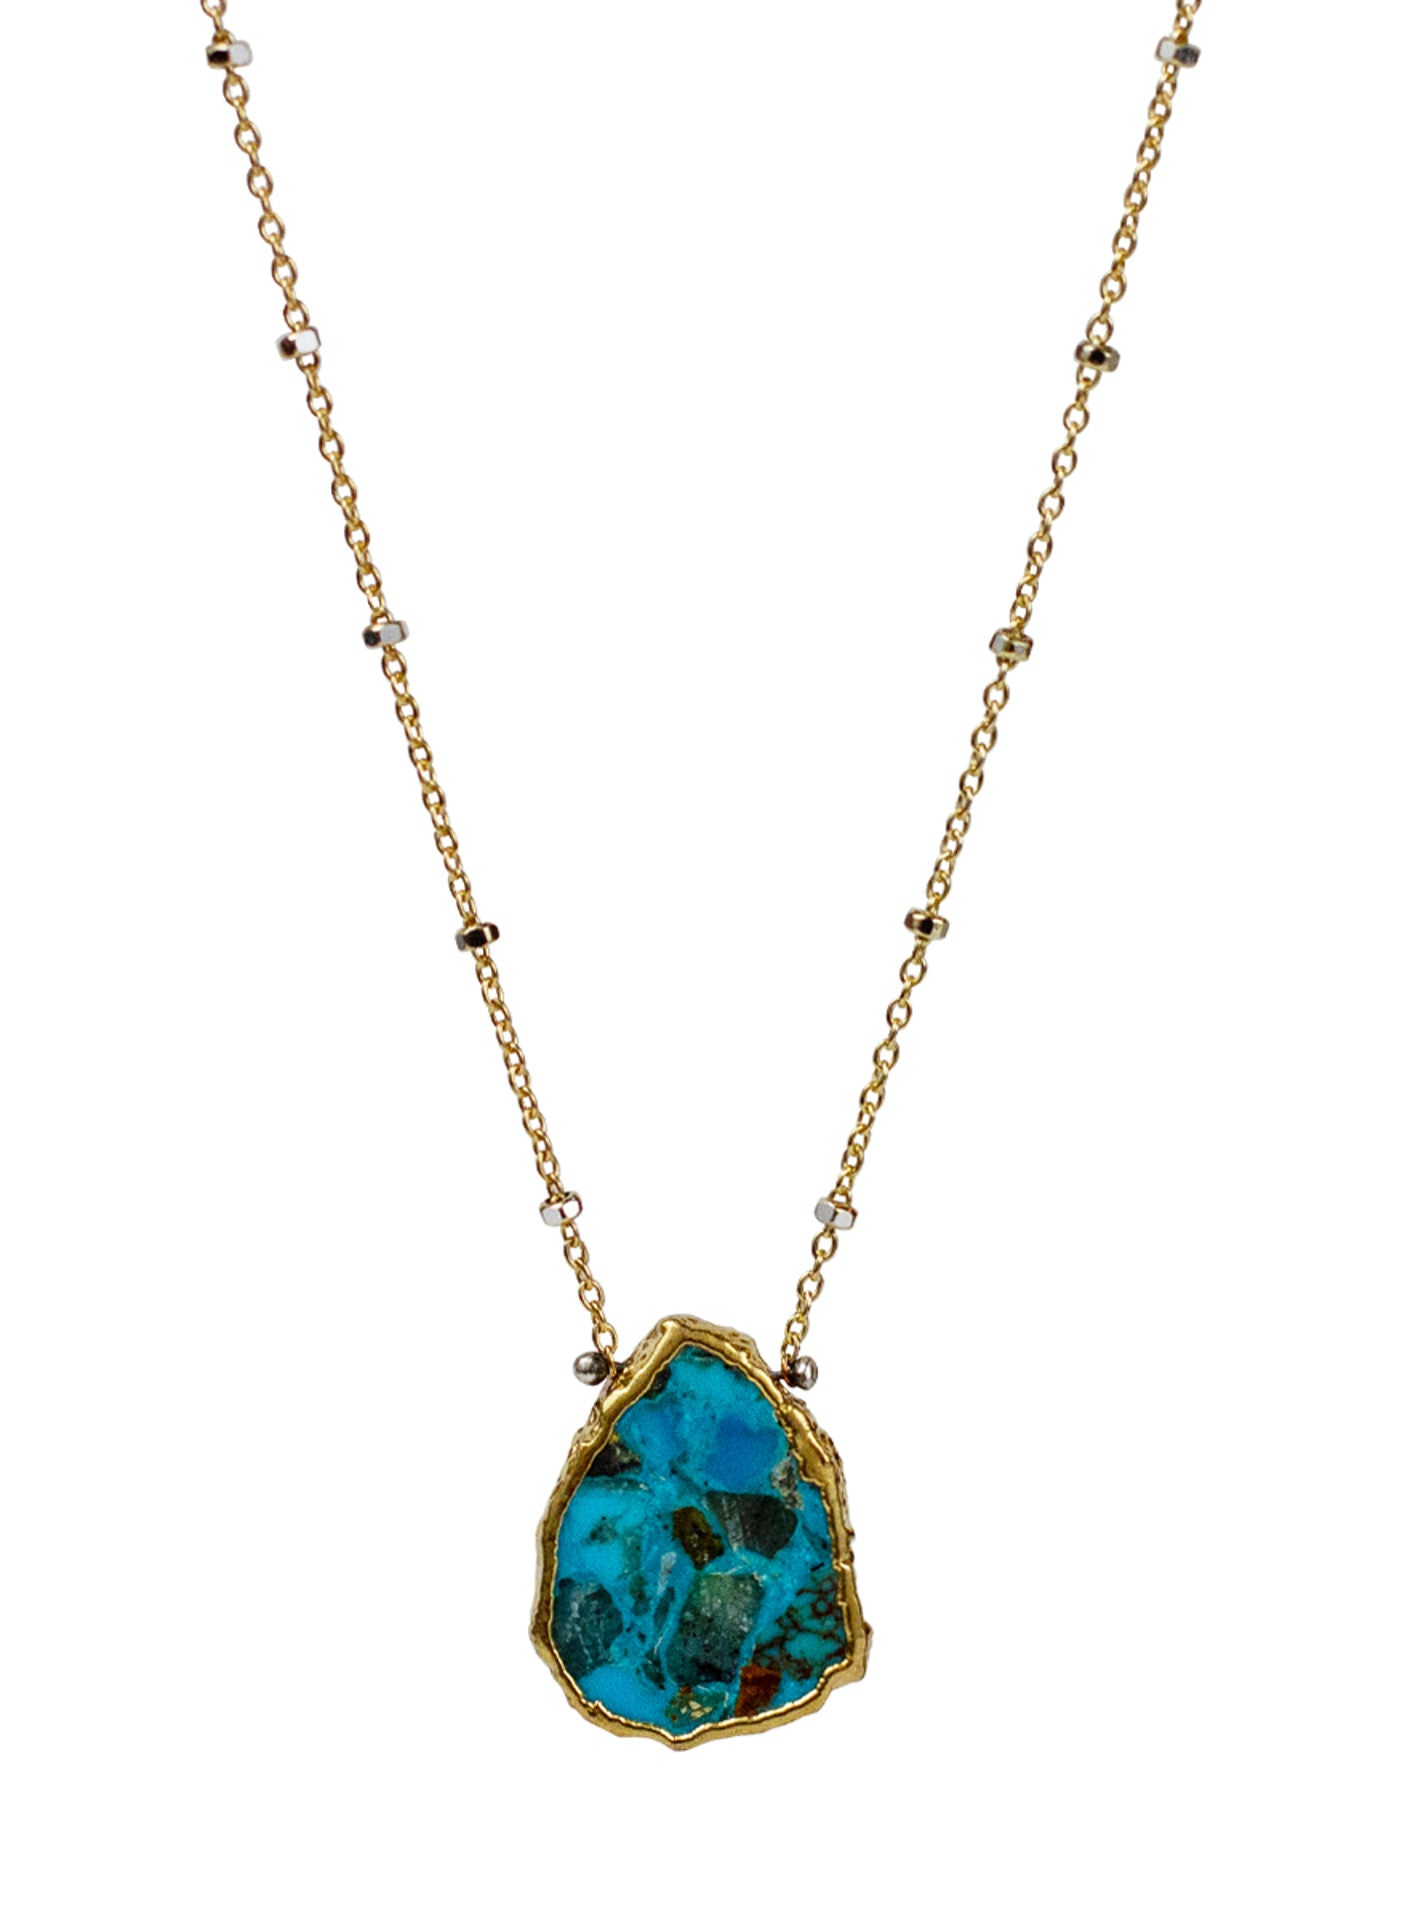 2020 Atlantis Necklace 14k Gold Fill Turquoise